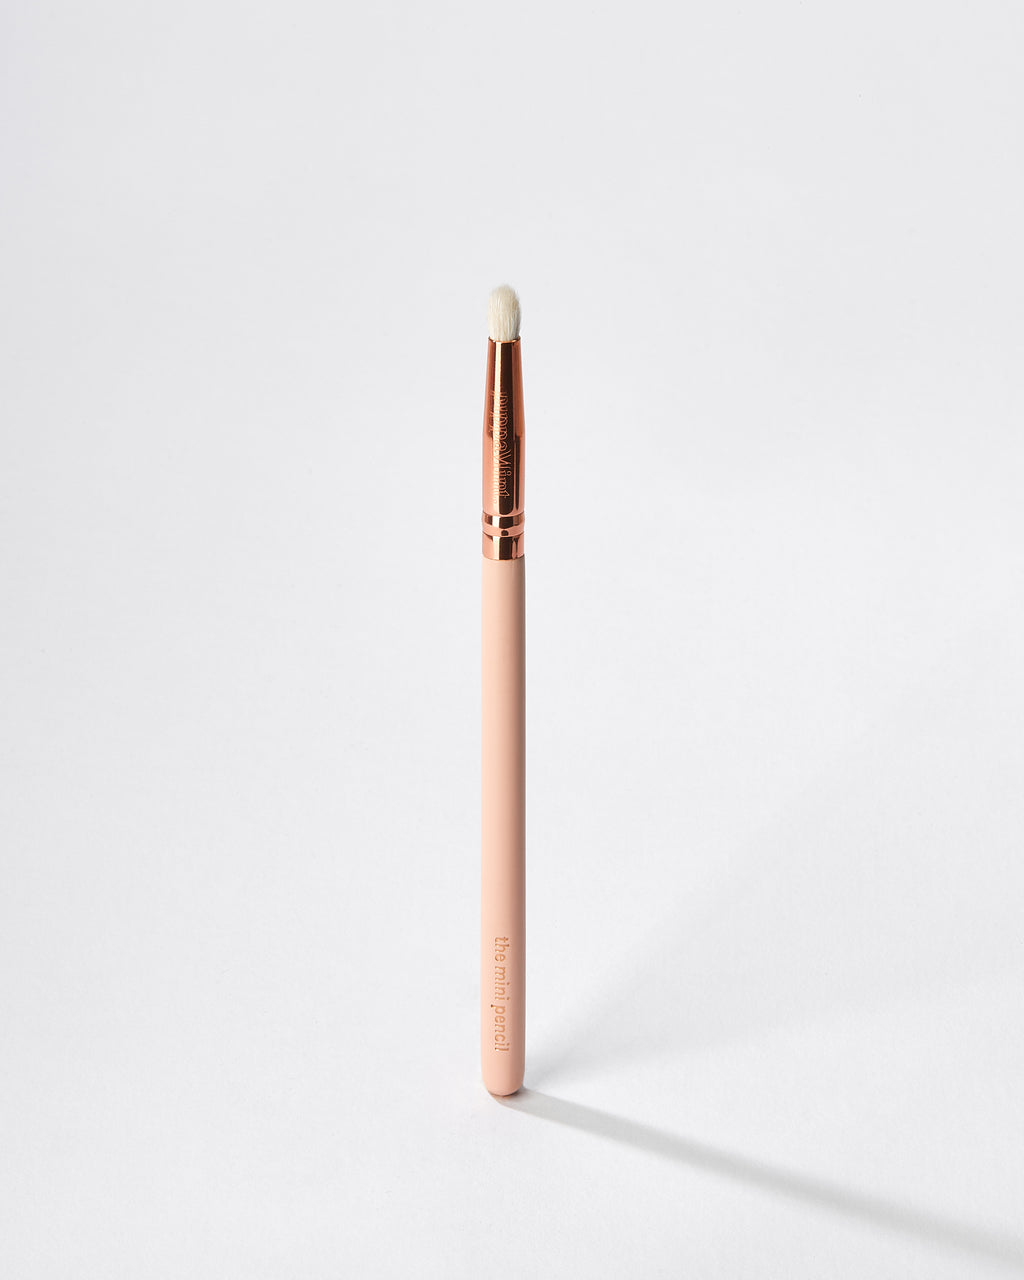 the mini pencil